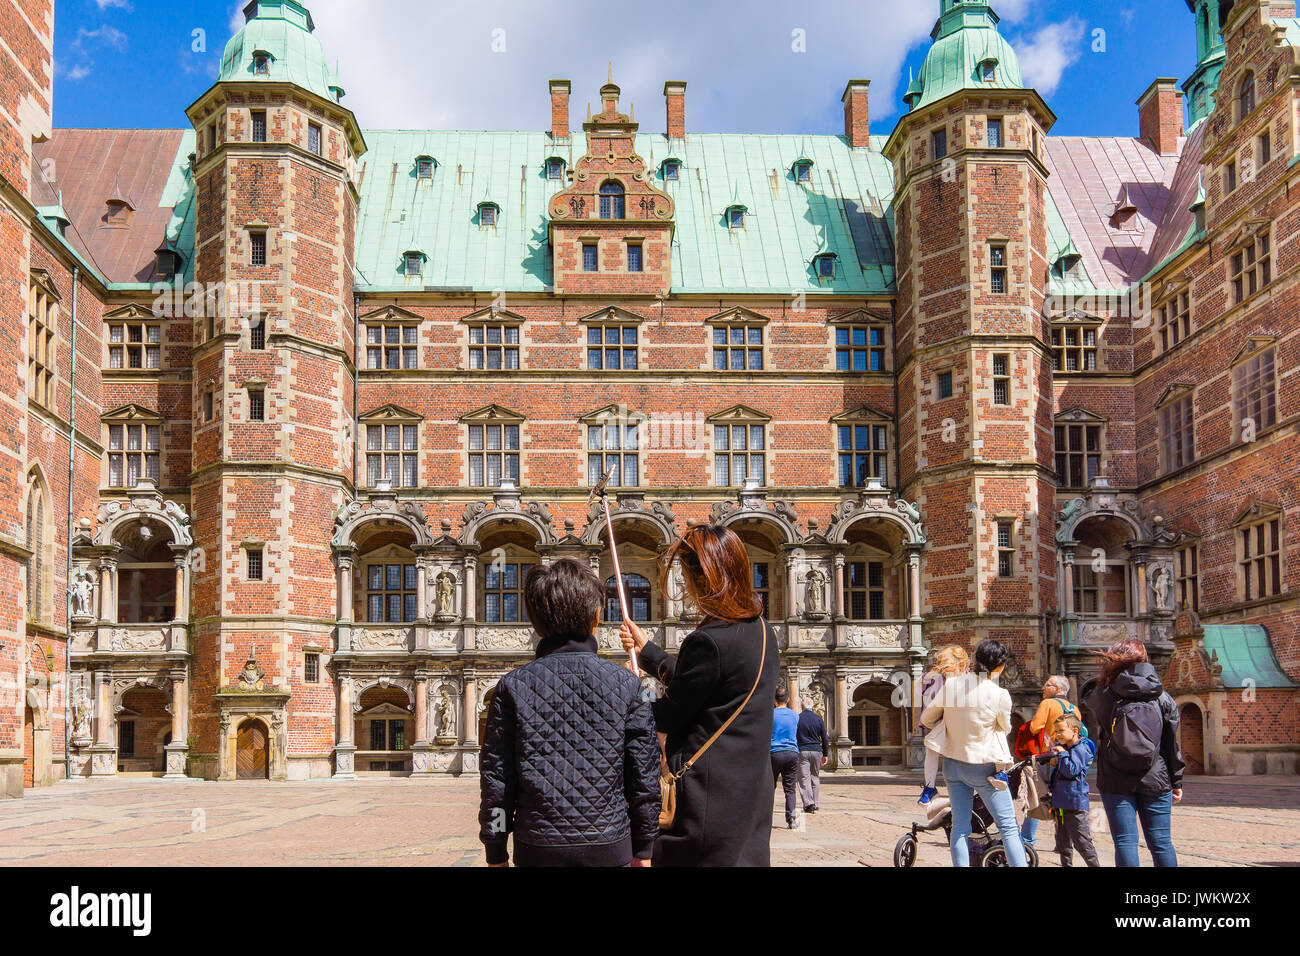 Mother and son using a selfie stick in front of the royal Frederiksborg castle, Tourists in the background. Hillerod, Denmark, August 6, 2017 - Stock Image